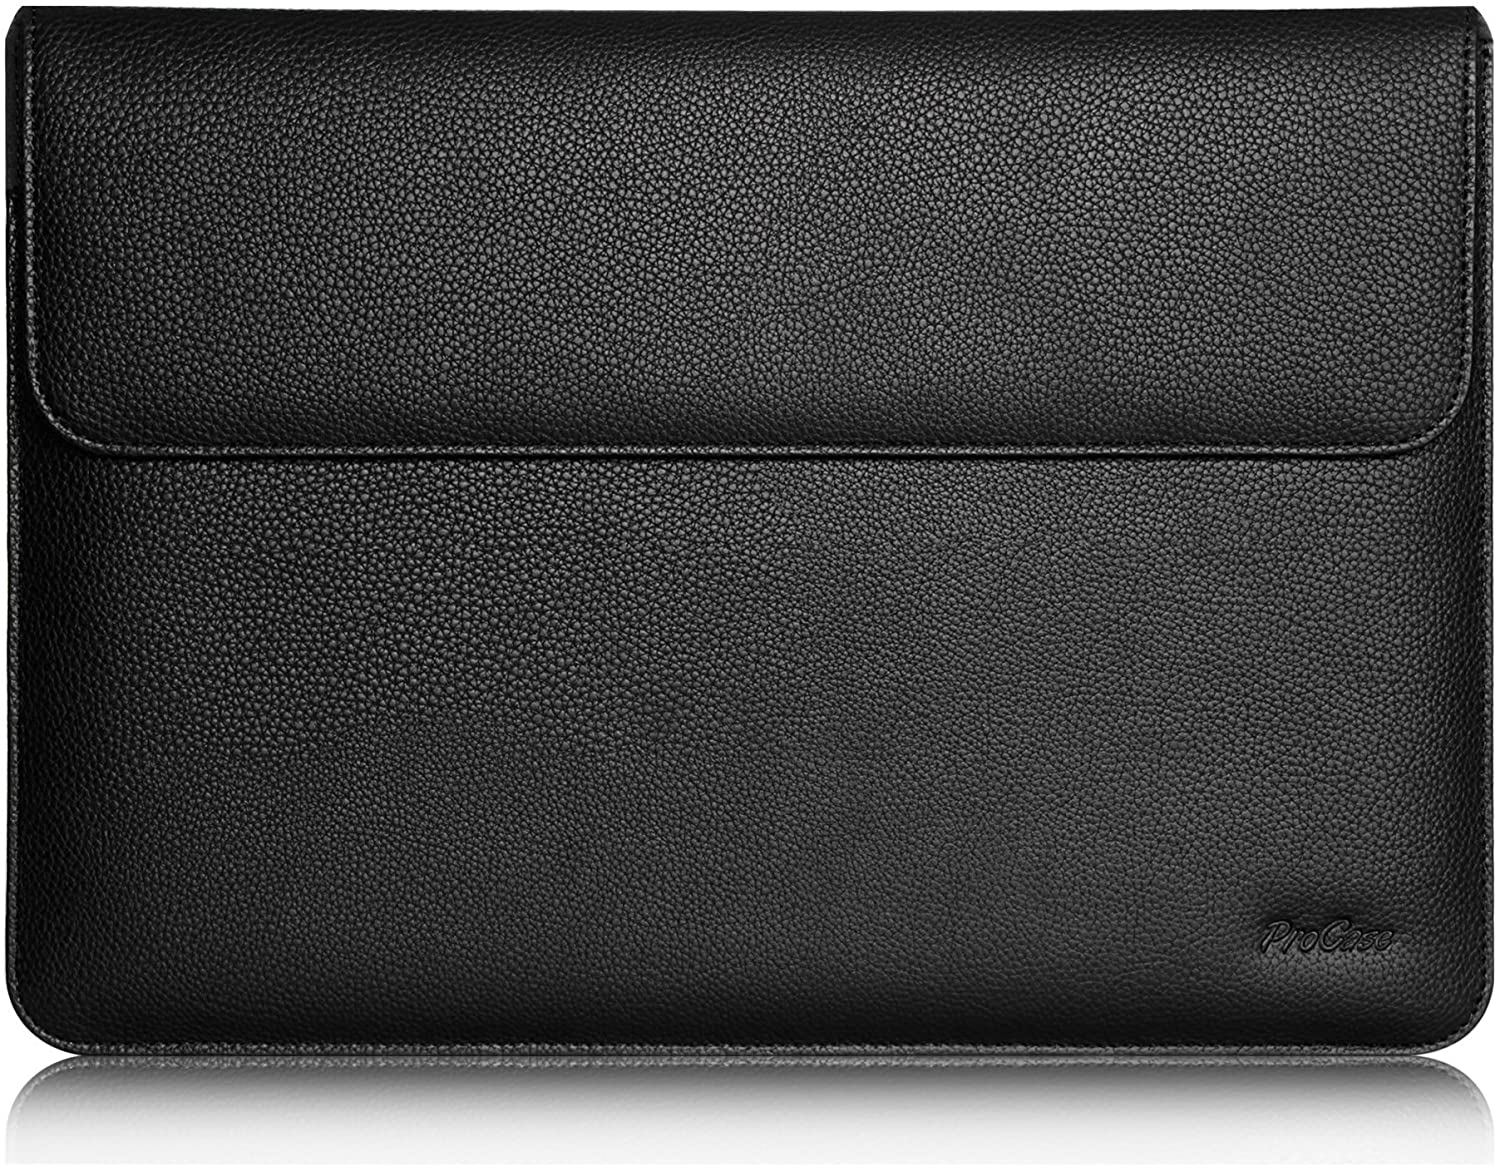 "Procase iPad Pro 12.9 Case Sleeve, Cushion Protective Sleeve Bag Cover for Apple iPad Pro 12.9"", Surface Pro X, Compatible with Apple Smart Keyboard, Document Pocket & Apple Pencil Holder (Black)"